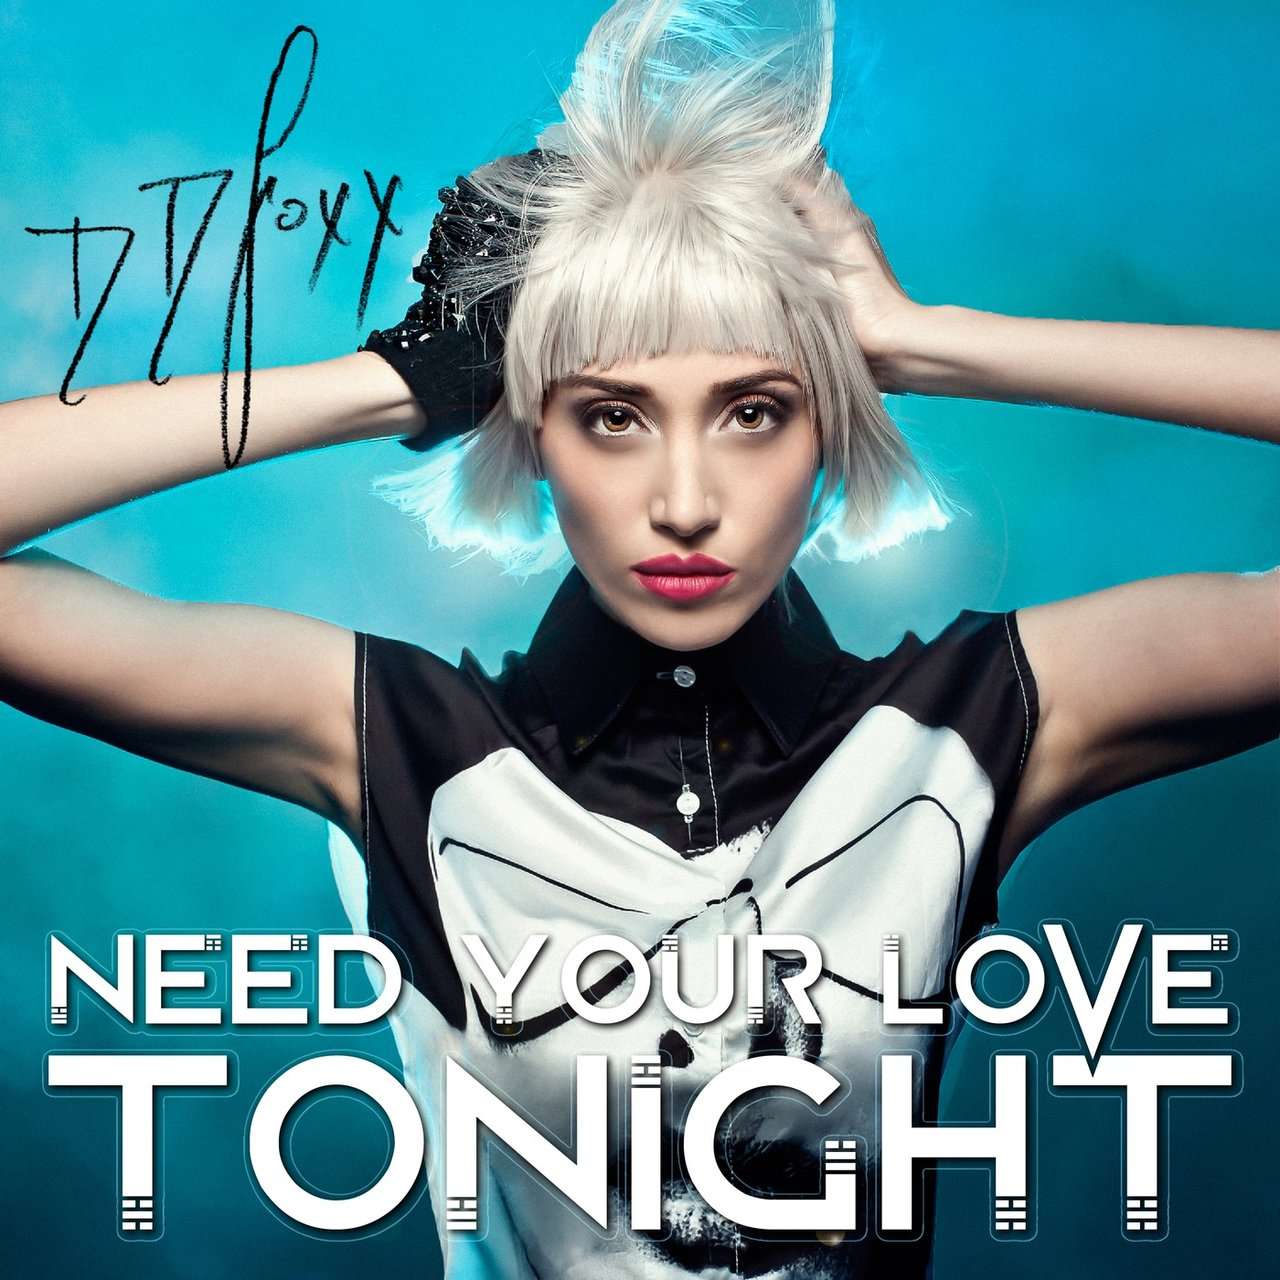 Need Your Love Tonight